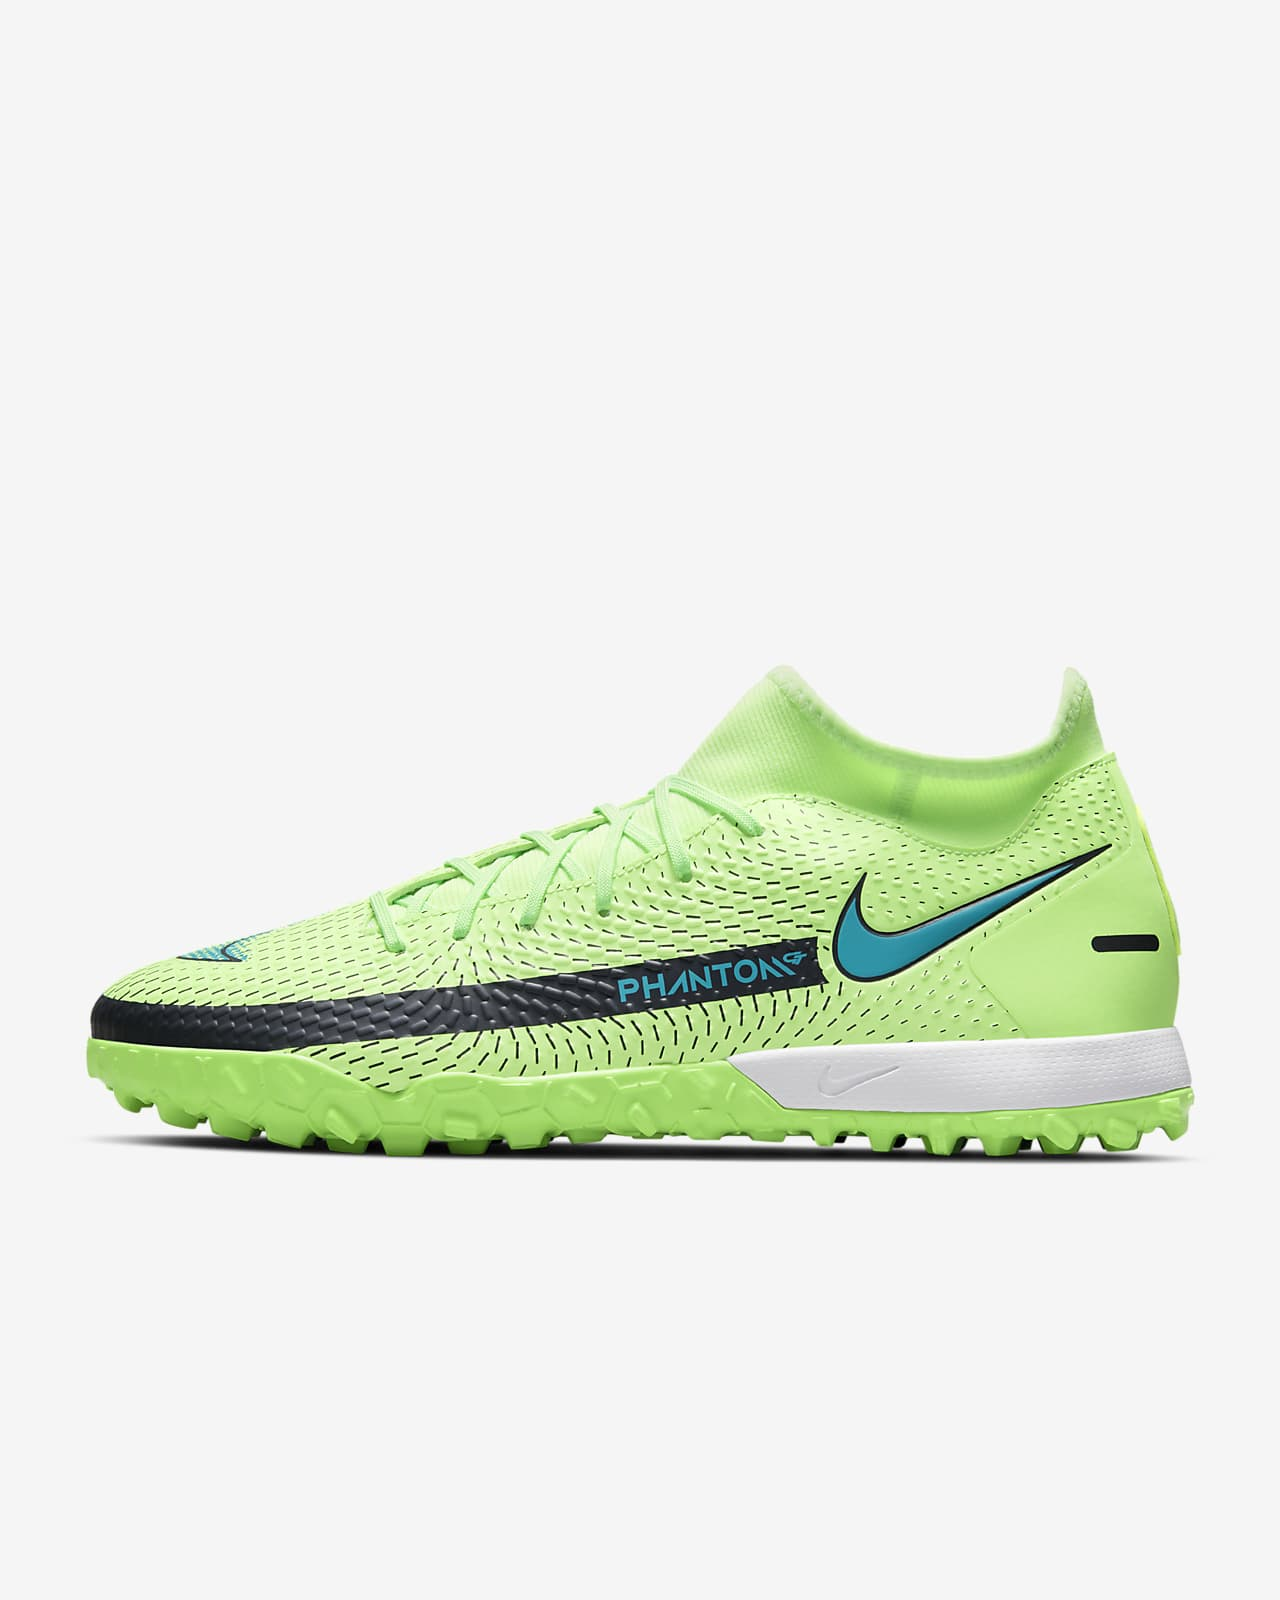 Chaussure de football pour surface synthétique Nike Phantom GT Academy Dynamic Fit TF